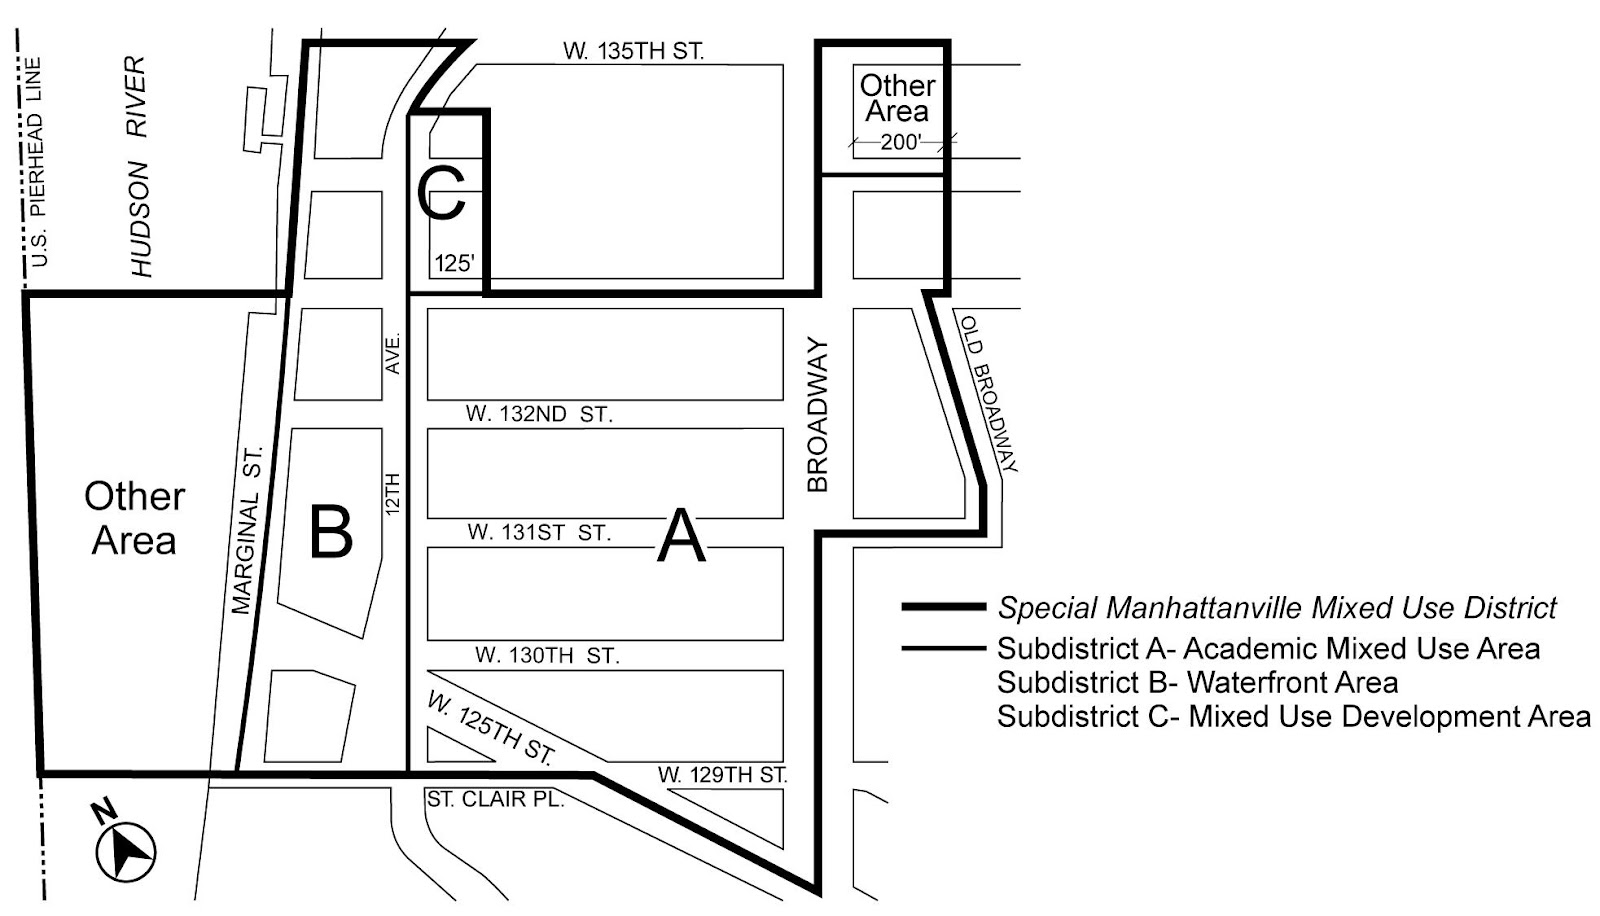 Zoning Resolutions Chapter 4: Special Manhattanville Mixed Use District Appendix A.0